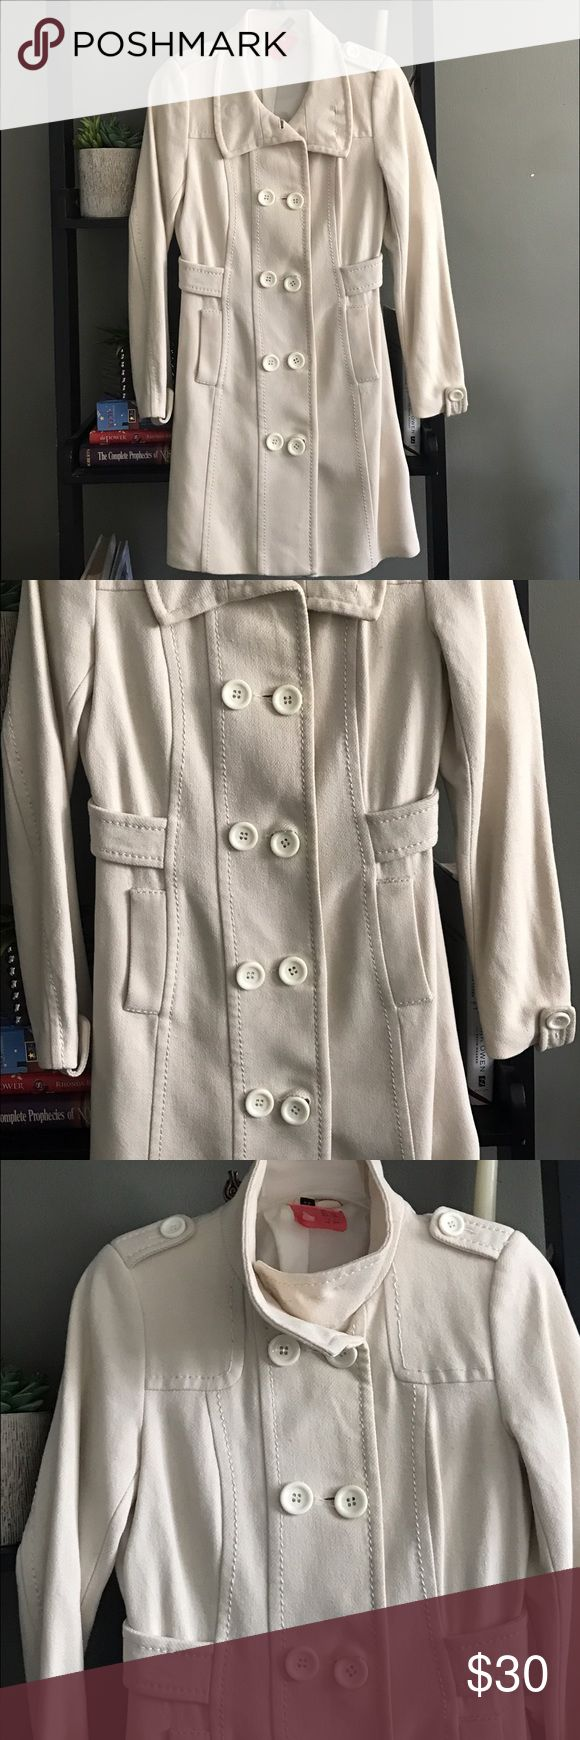 H&M coat Womens H&M coat size 4. Off white color. This was my favorite coat it's so elegant and stylish!! Always received compliments when I wore it! Newly dry cleaned ready to go! 💋💋 H&M Jackets & Coats